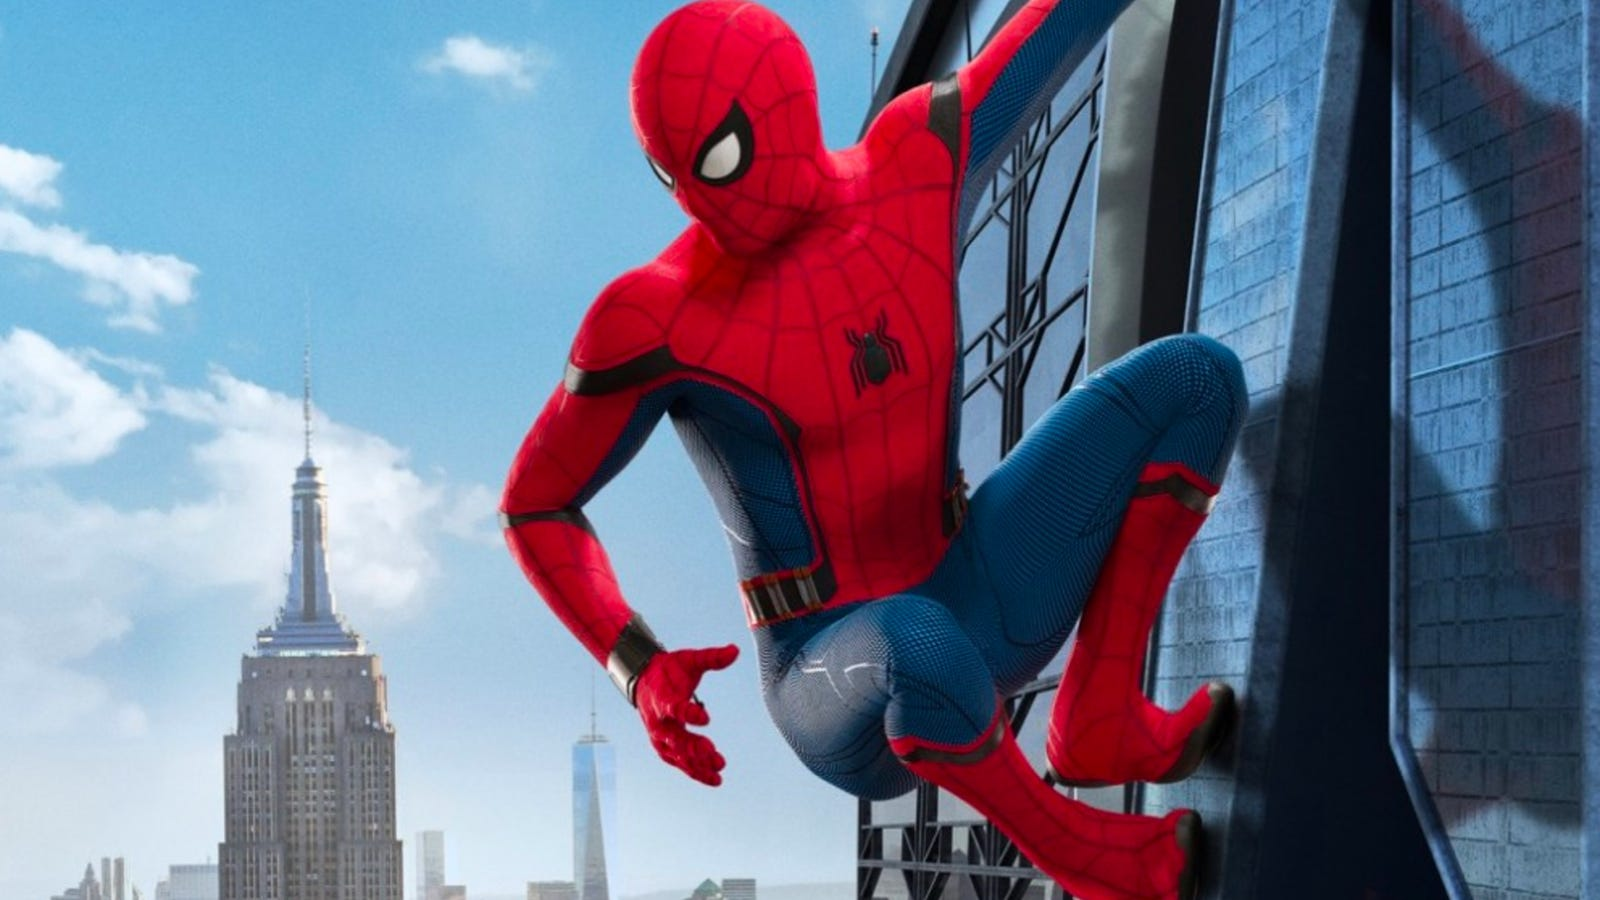 Listen to a Heroic Sampling From the Spider-Man: Homecoming Score